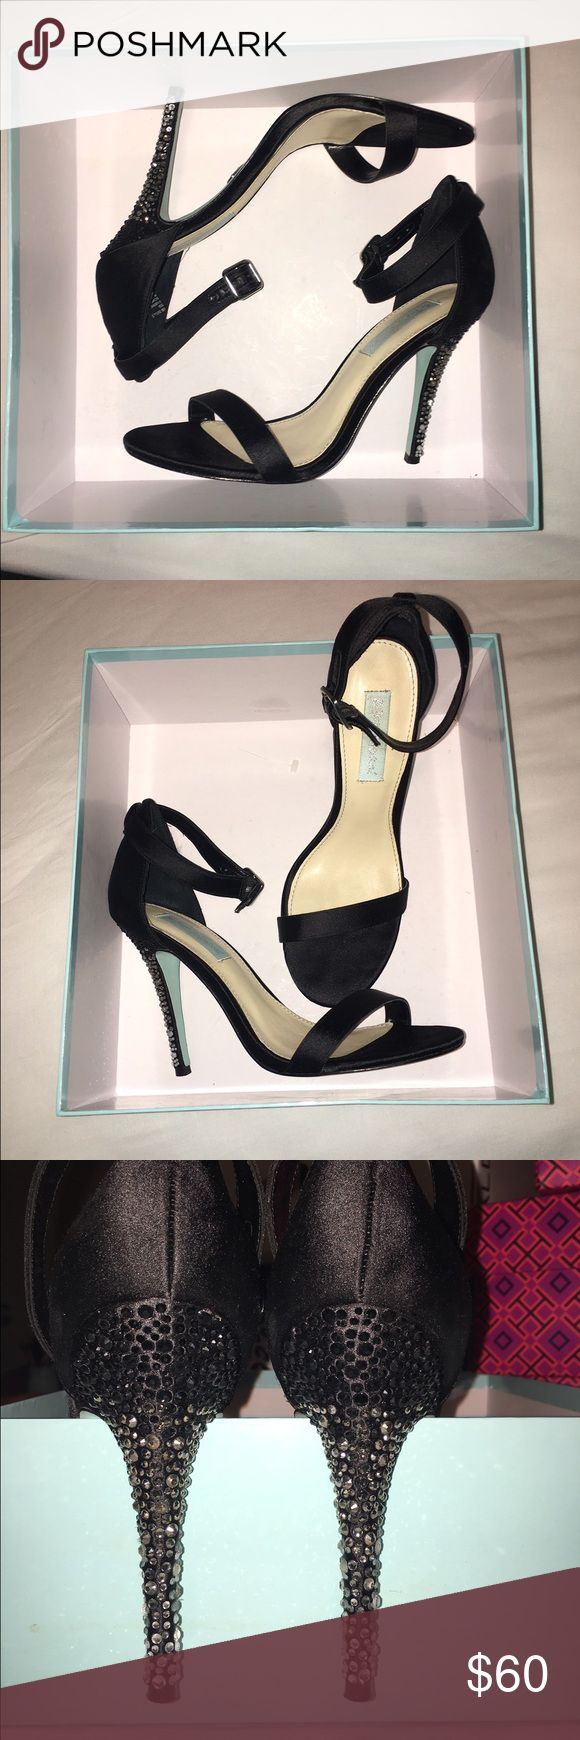 Betsy Johnson strapy heels!! Worn to a wedding!! Betsy Johnson strapy heels!! Worn to a wedding!! Worn once beautiful and comfortable to wear for long periods! Bought new from Dillard's. Will sell for less on Ⓜ️ercari Betsey Johnson Shoes Heels